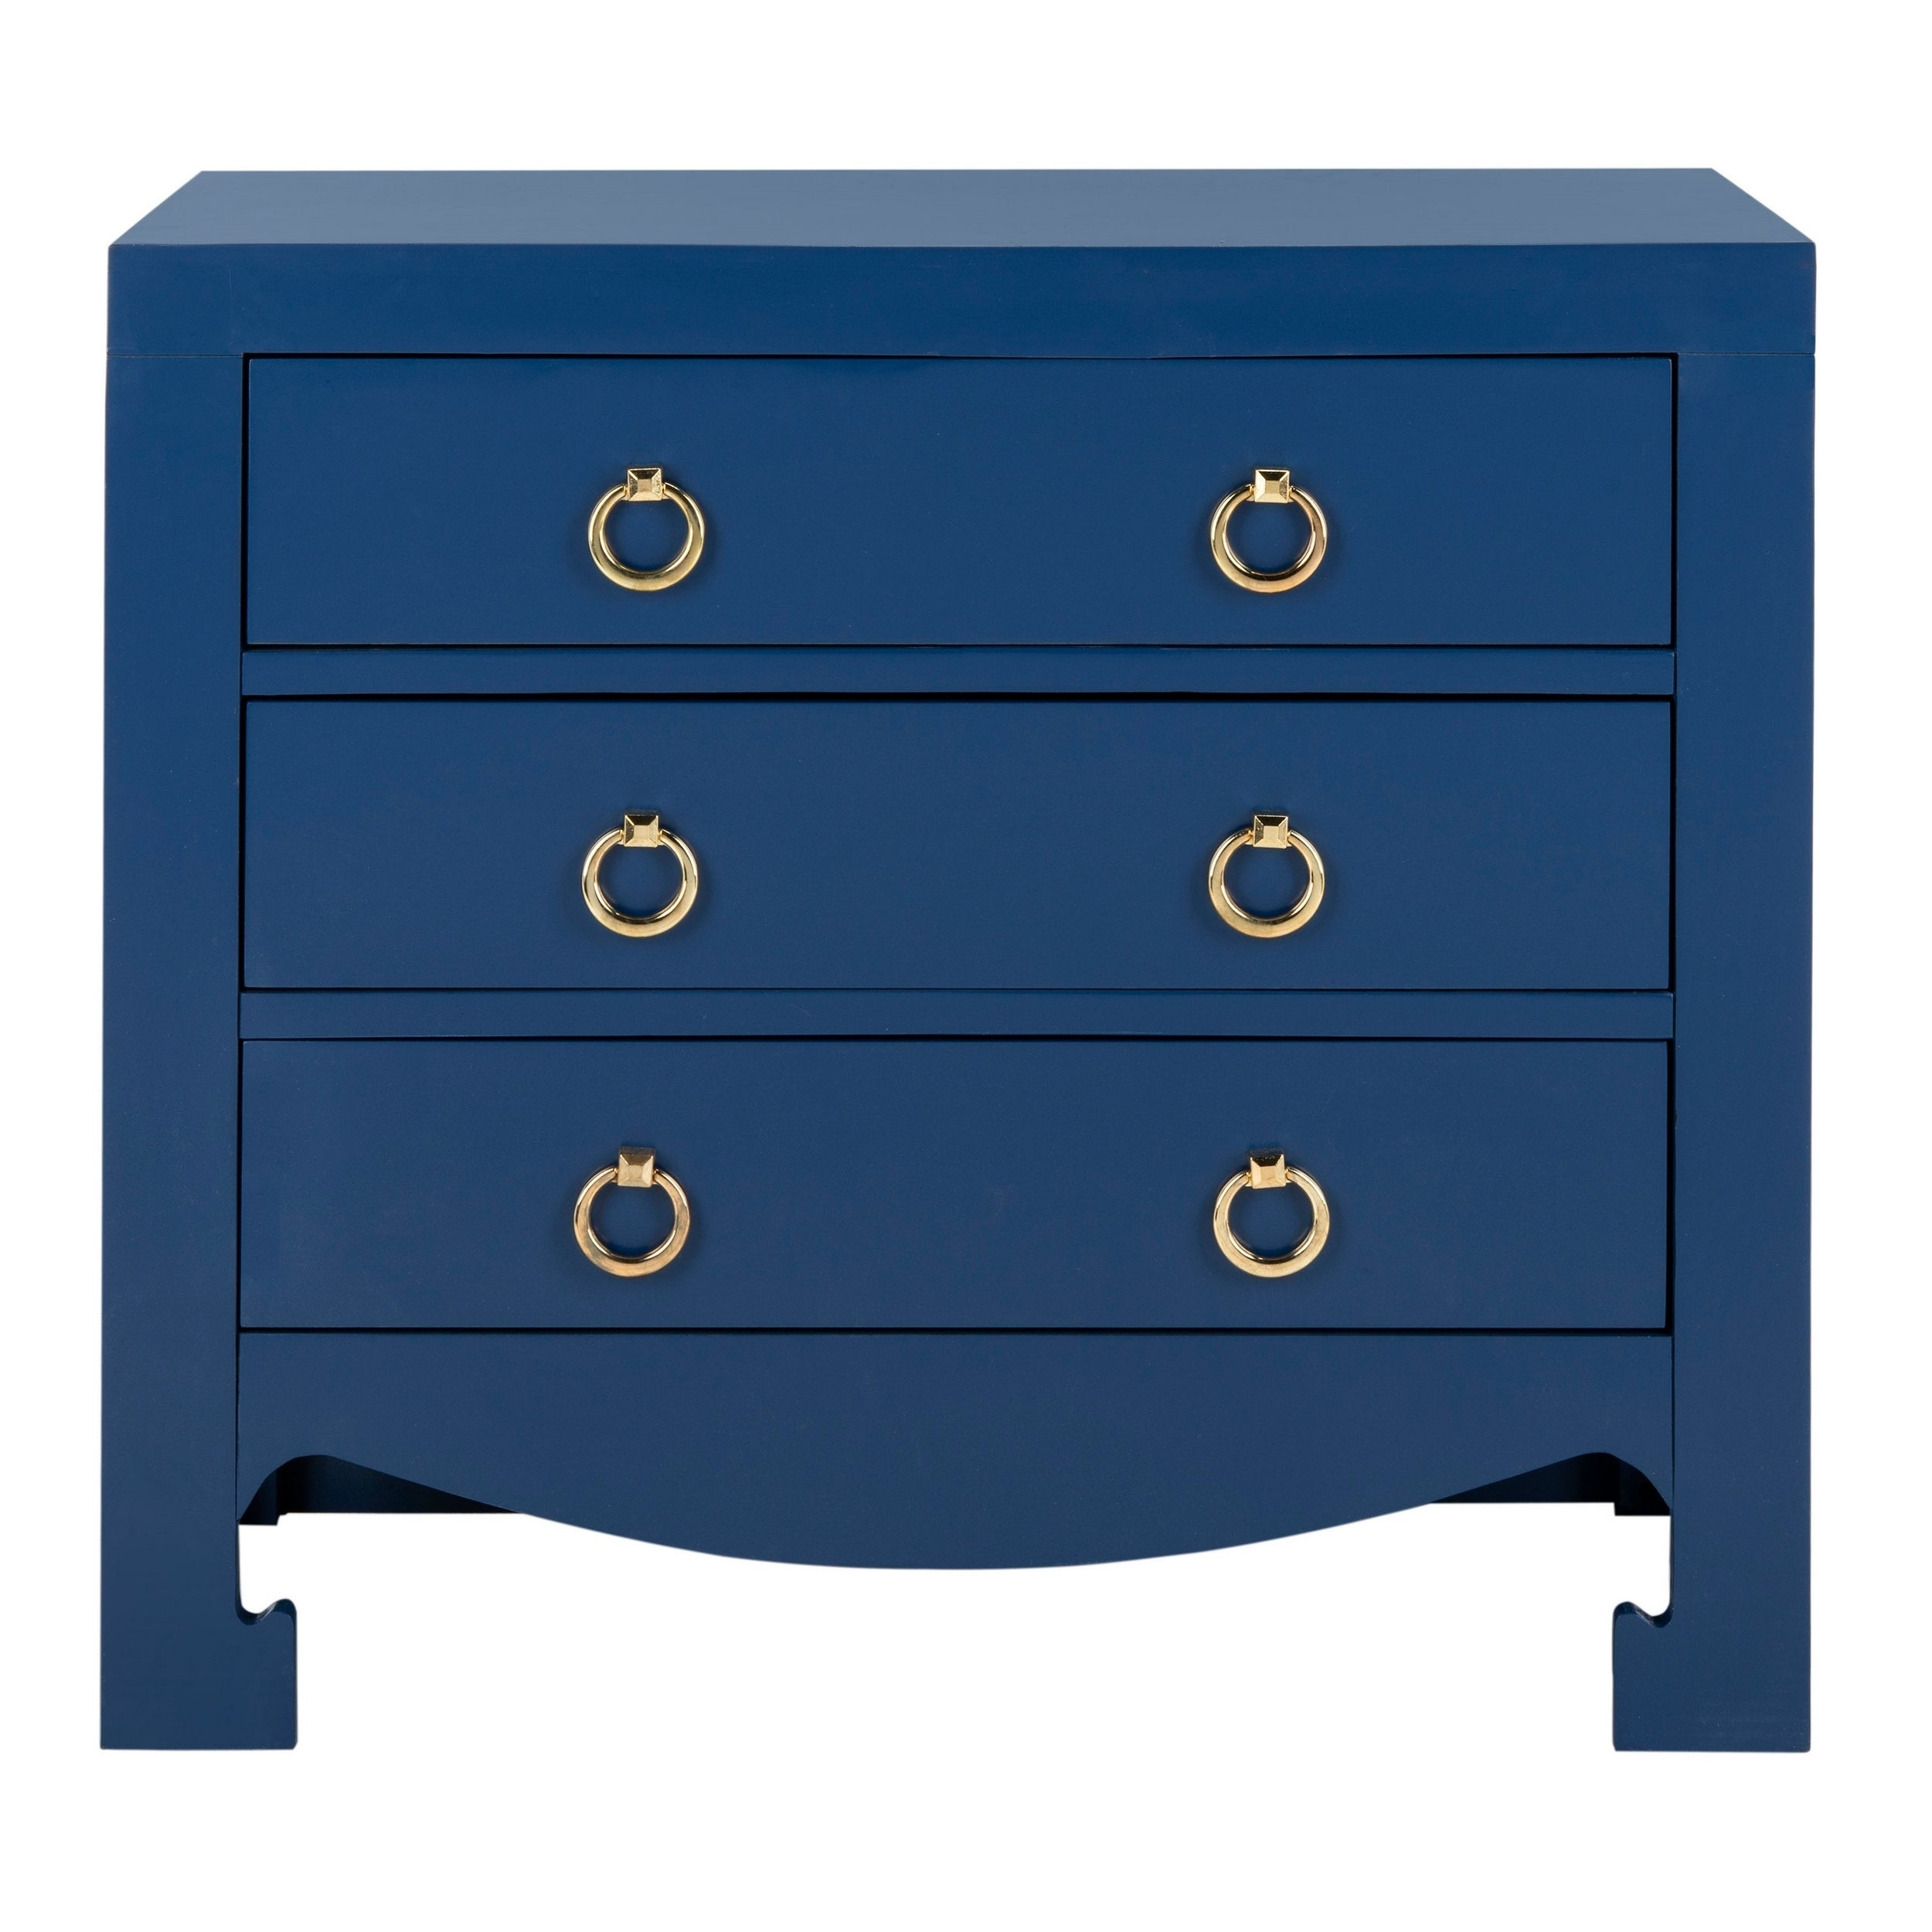 Safavieh Dion 3 Drawer Chest - Lapis Blue / Gold